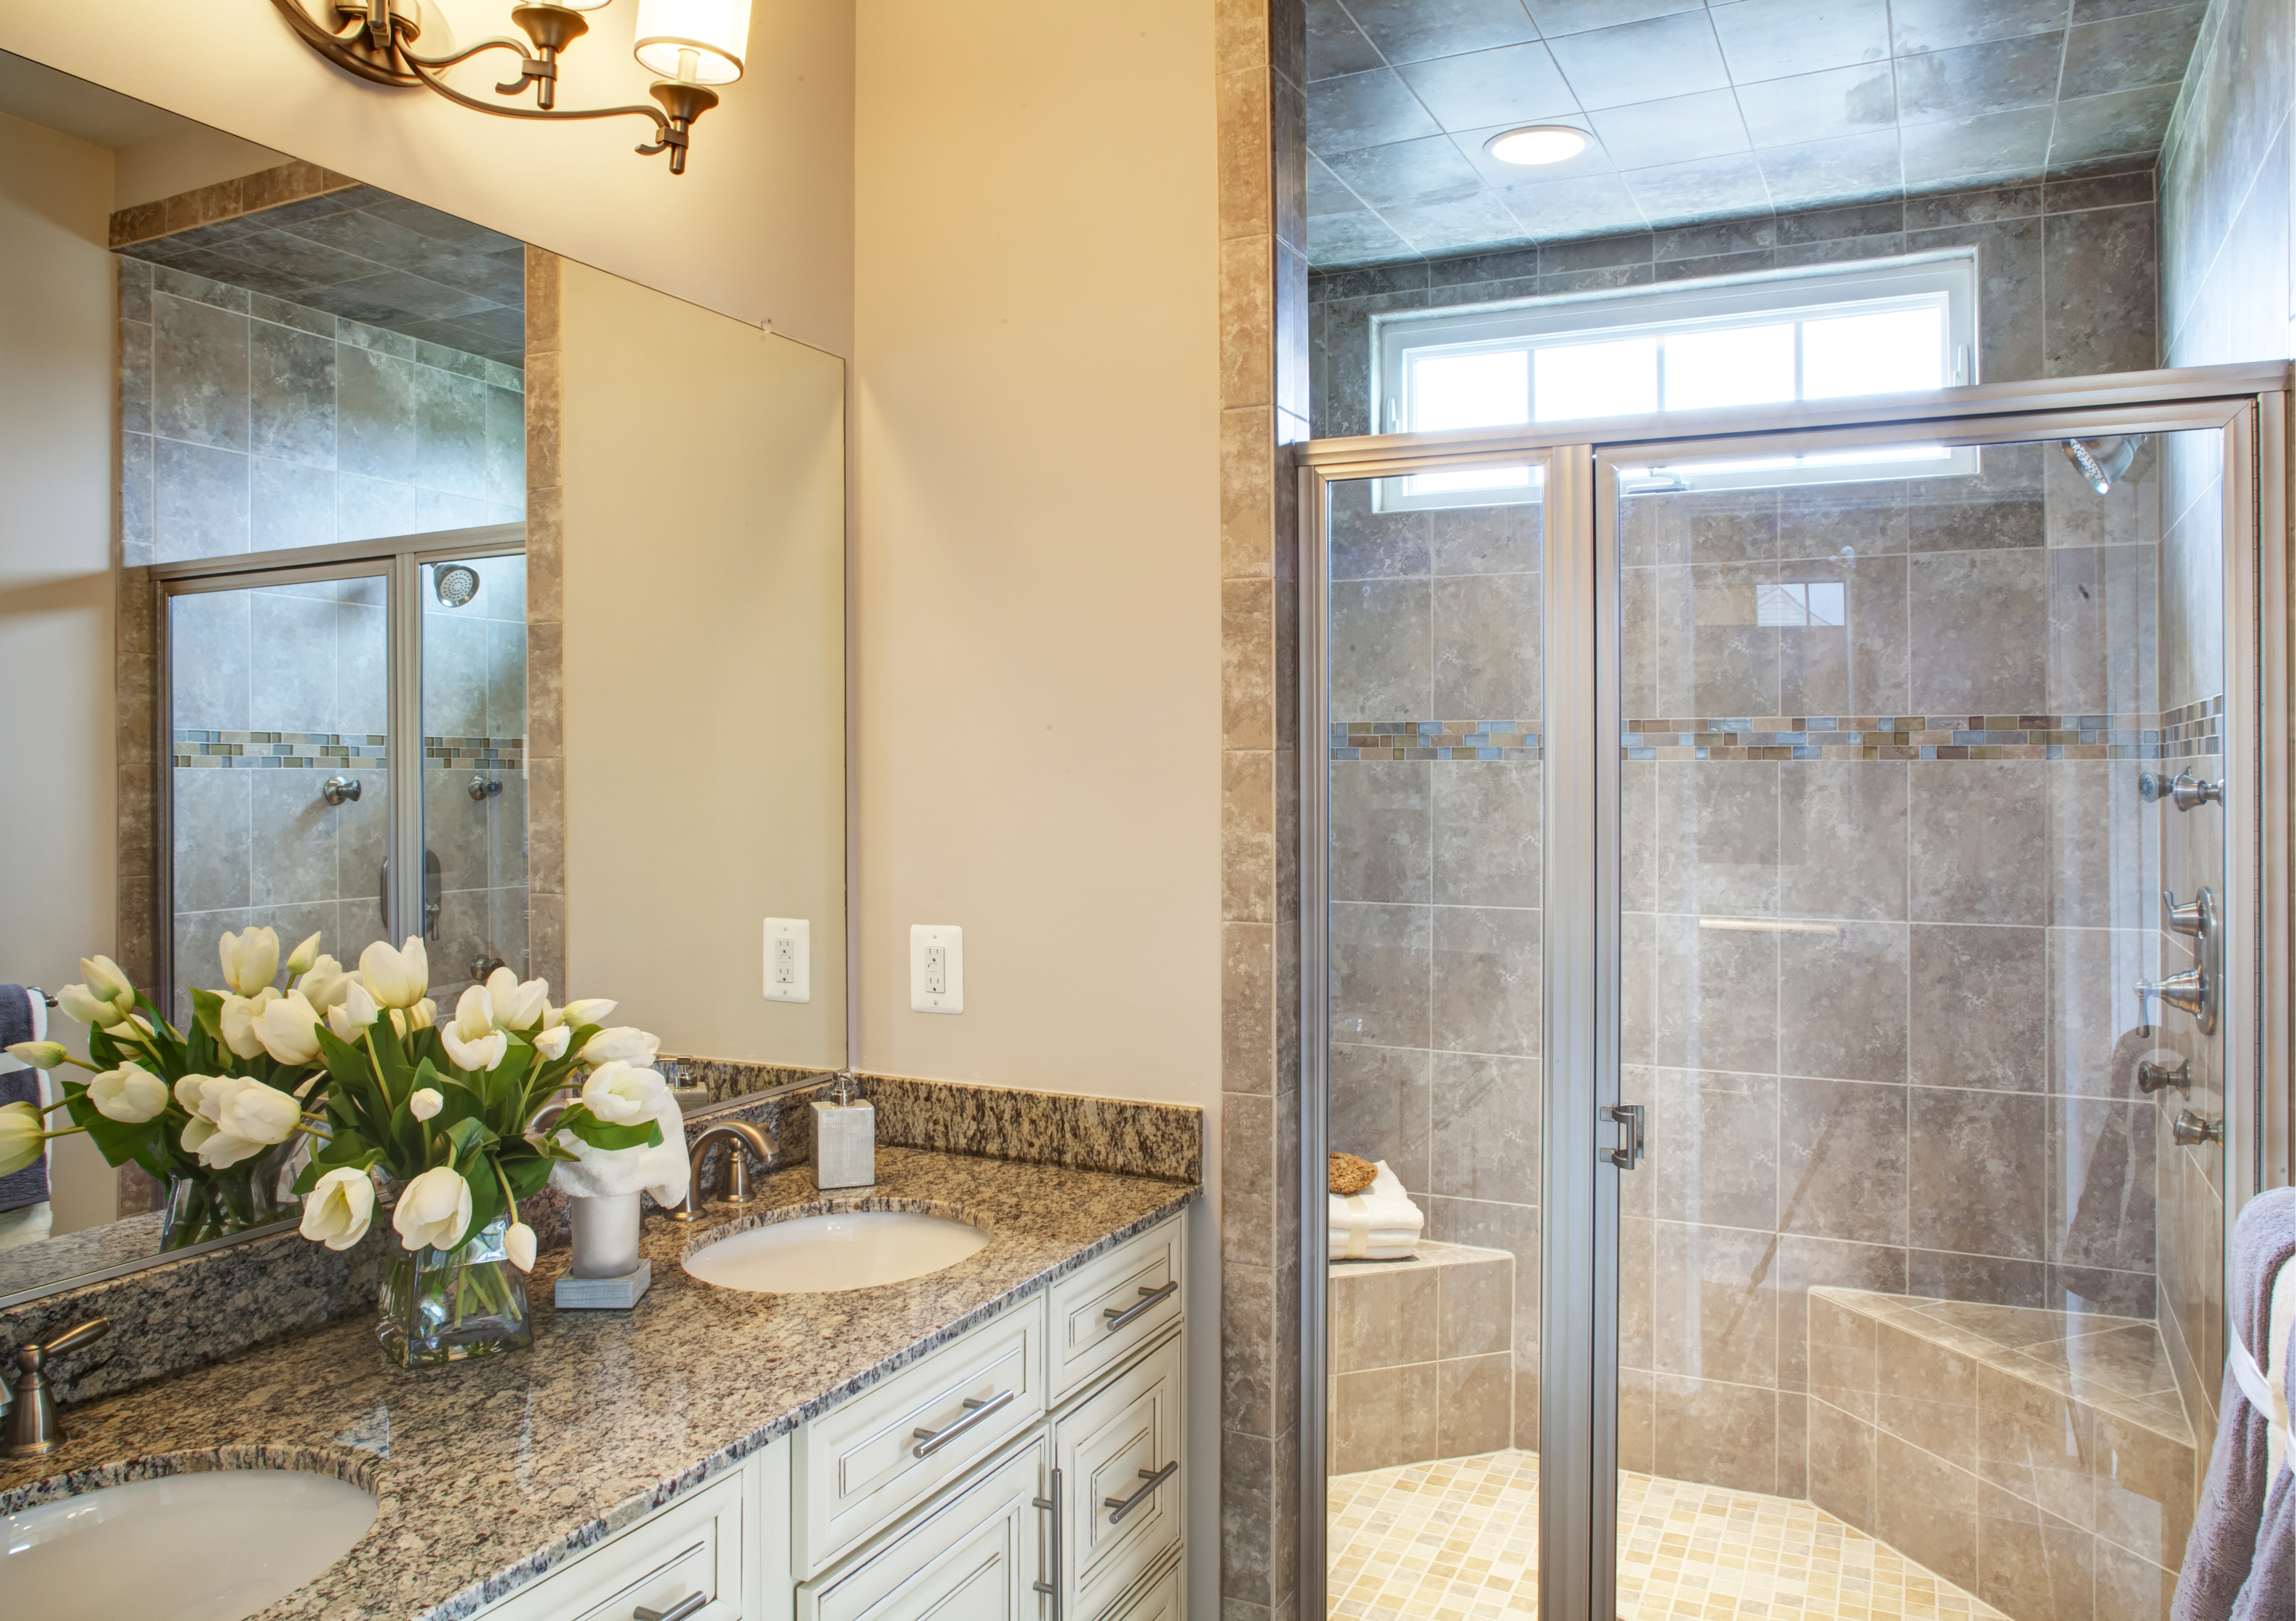 The breathtaking Owner's Bathroom is spacious, luxurious and truly stylish. It is covered with beautiful tile and high-end accessories of your choosing